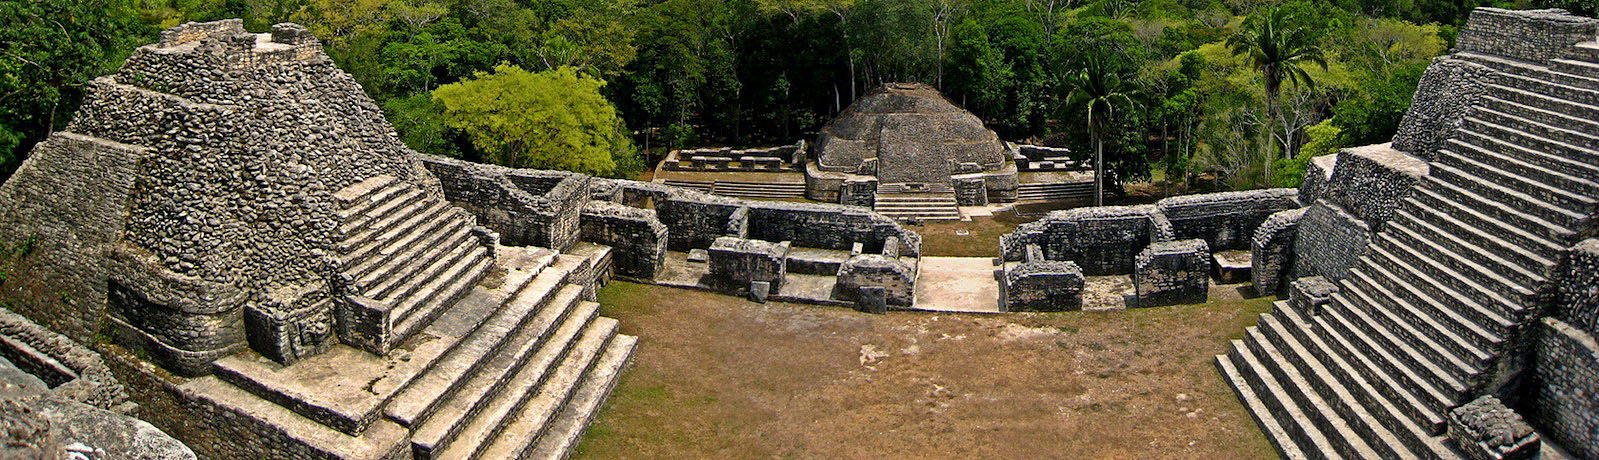 Archaeologists to discuss discoveries made at ancient city in Belize on March 3rd.